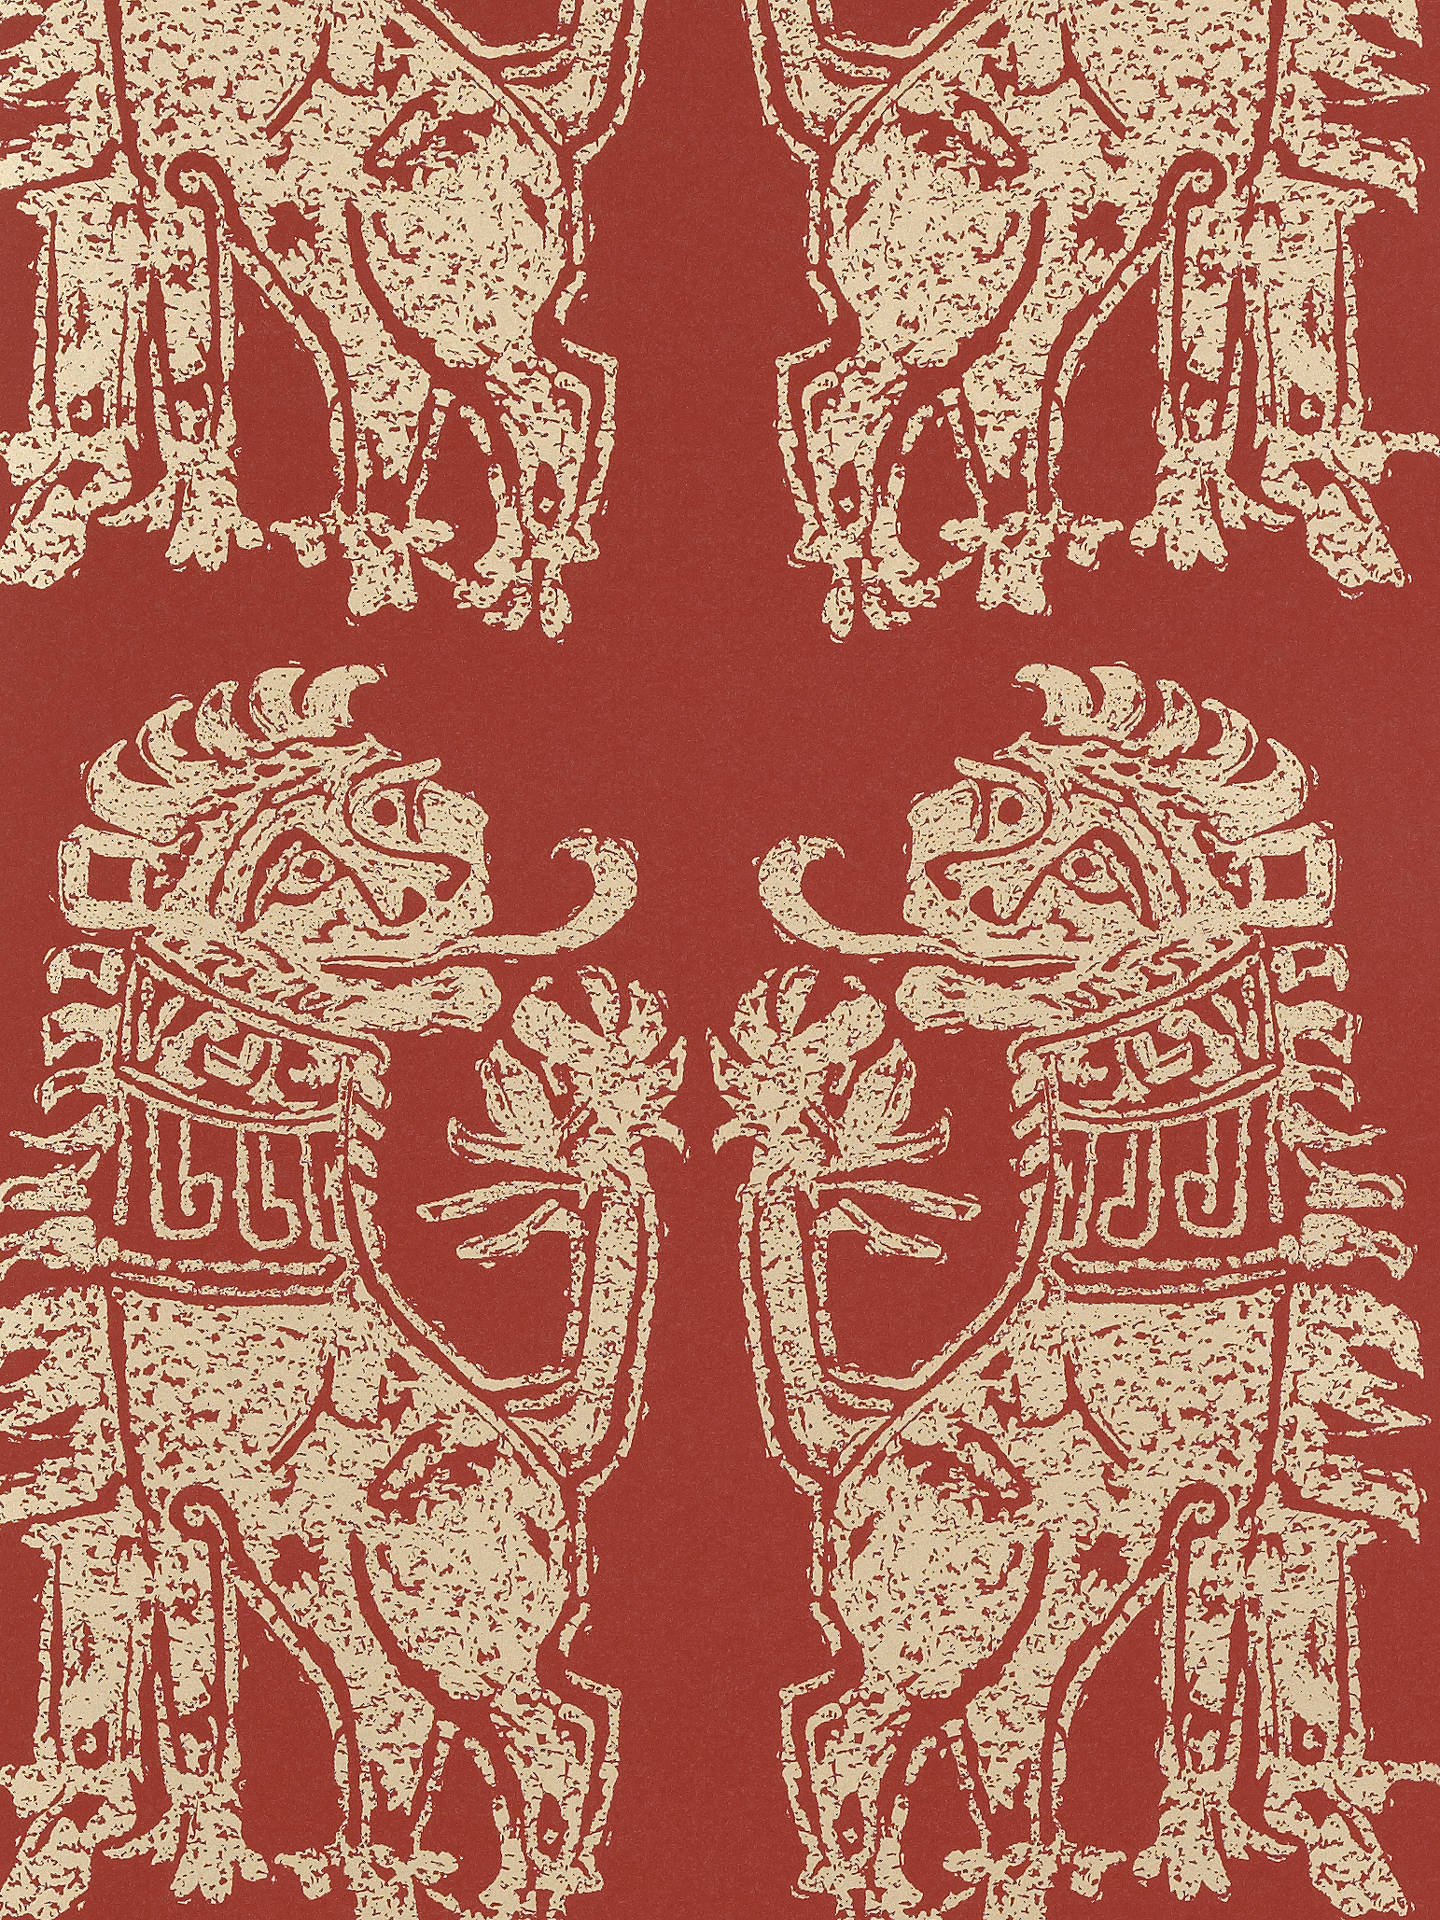 Buy Sanderson Sicilian Lions Wallpaper, DVIWSI103, Red / Gold Online at johnlewis.com